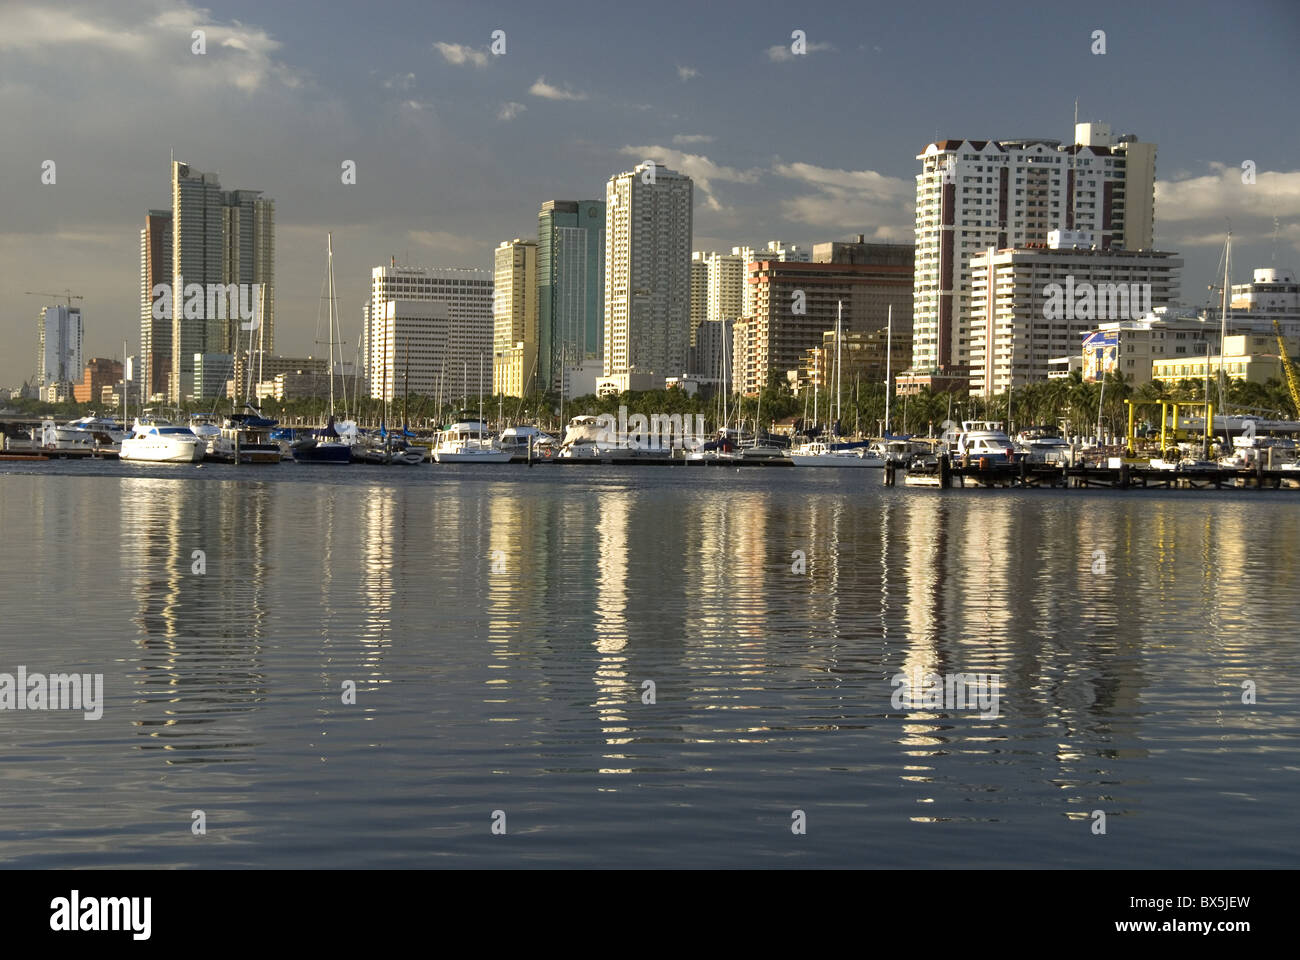 Malate district on shore of Manila Bay, Manila, Philippines, Southeast Asia, Asia - Stock Image